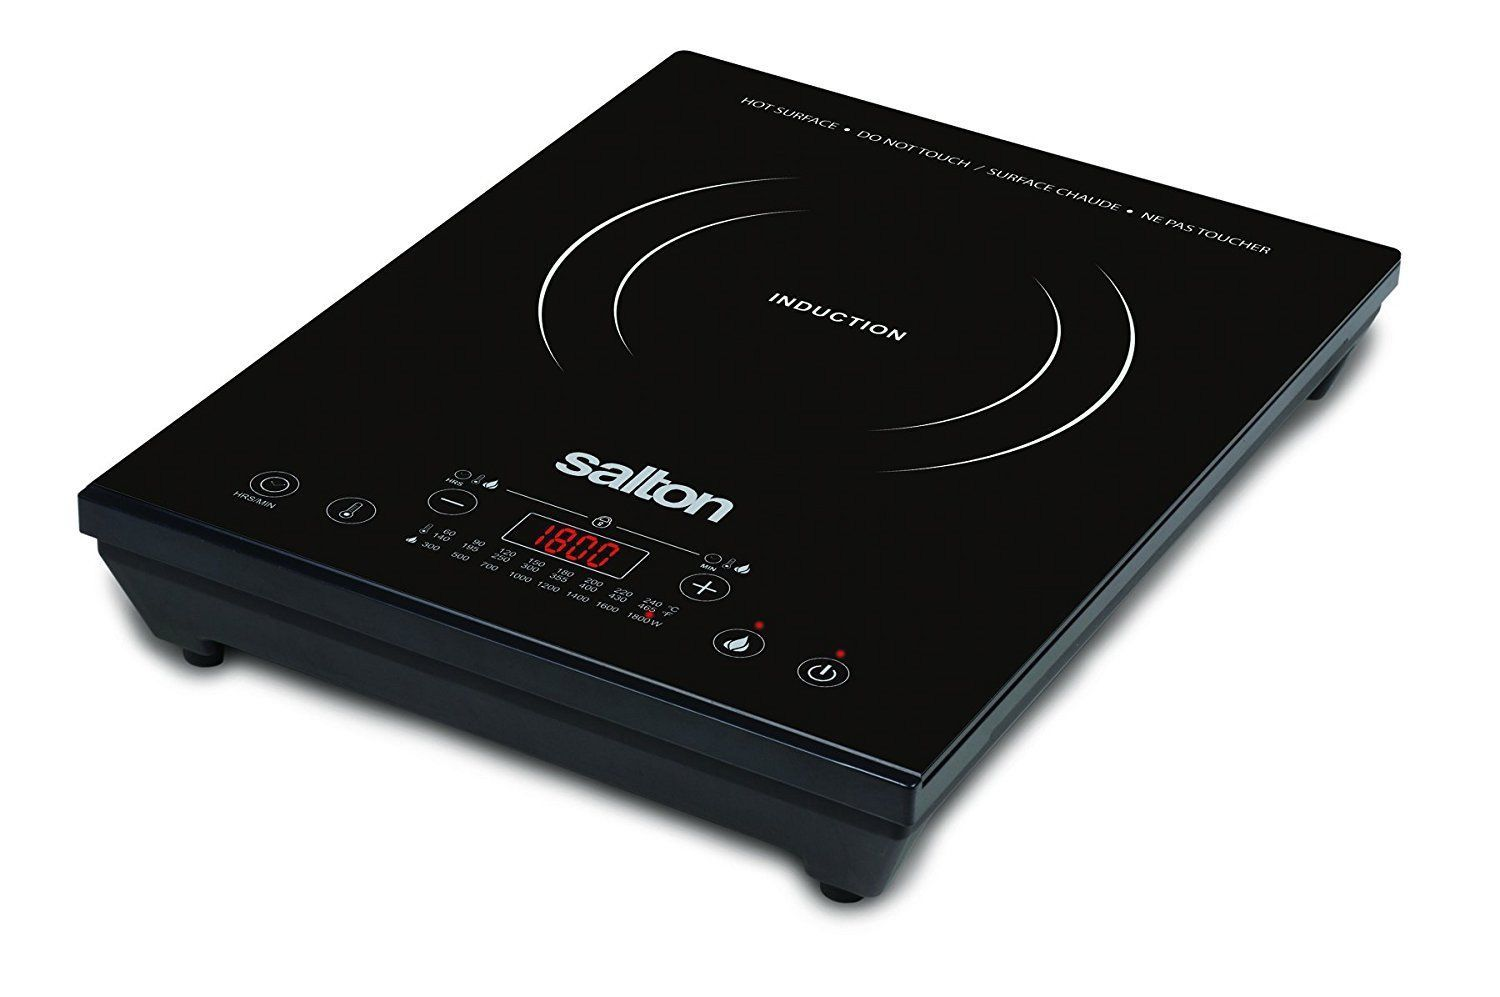 Salton Portable 8-Temperature 1800 Watts Induction Cooktop